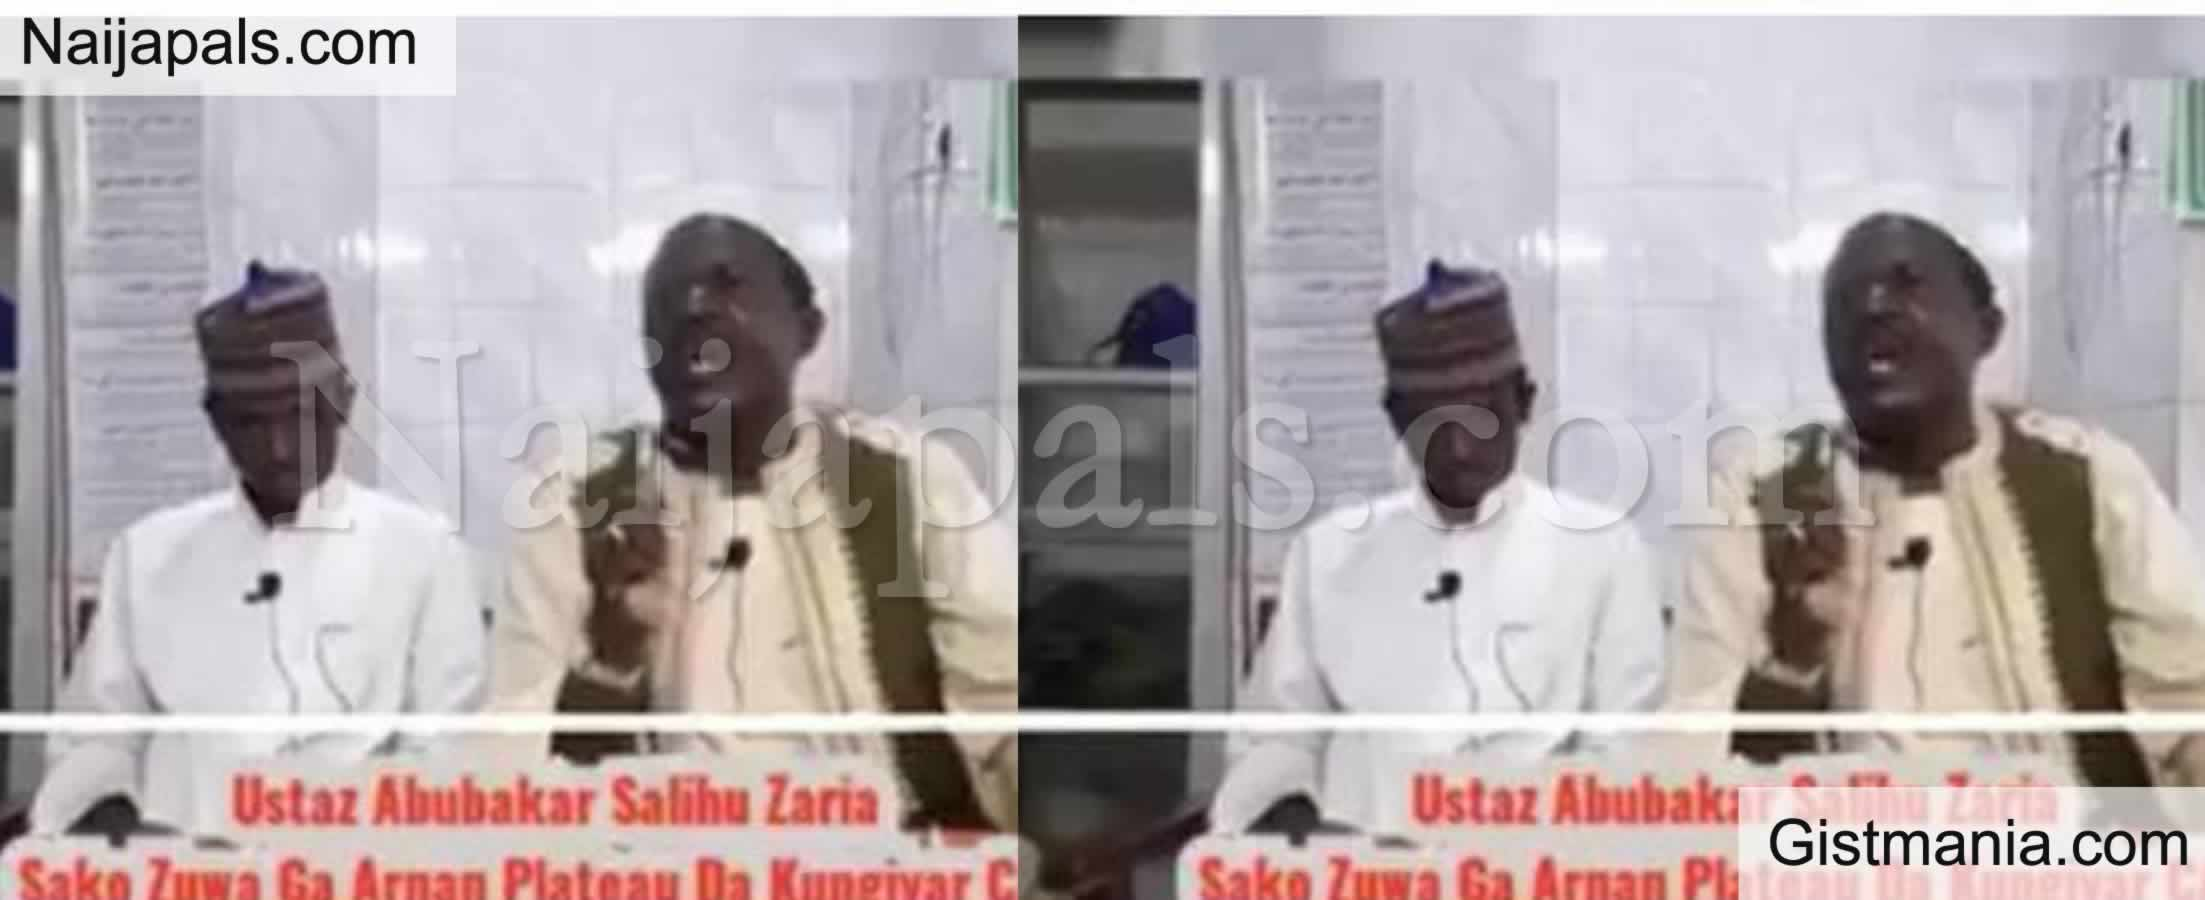 LMAO: If You Masturbate, Your Hand Will Be Pregnant In The Afterlife - Muslim Cleric